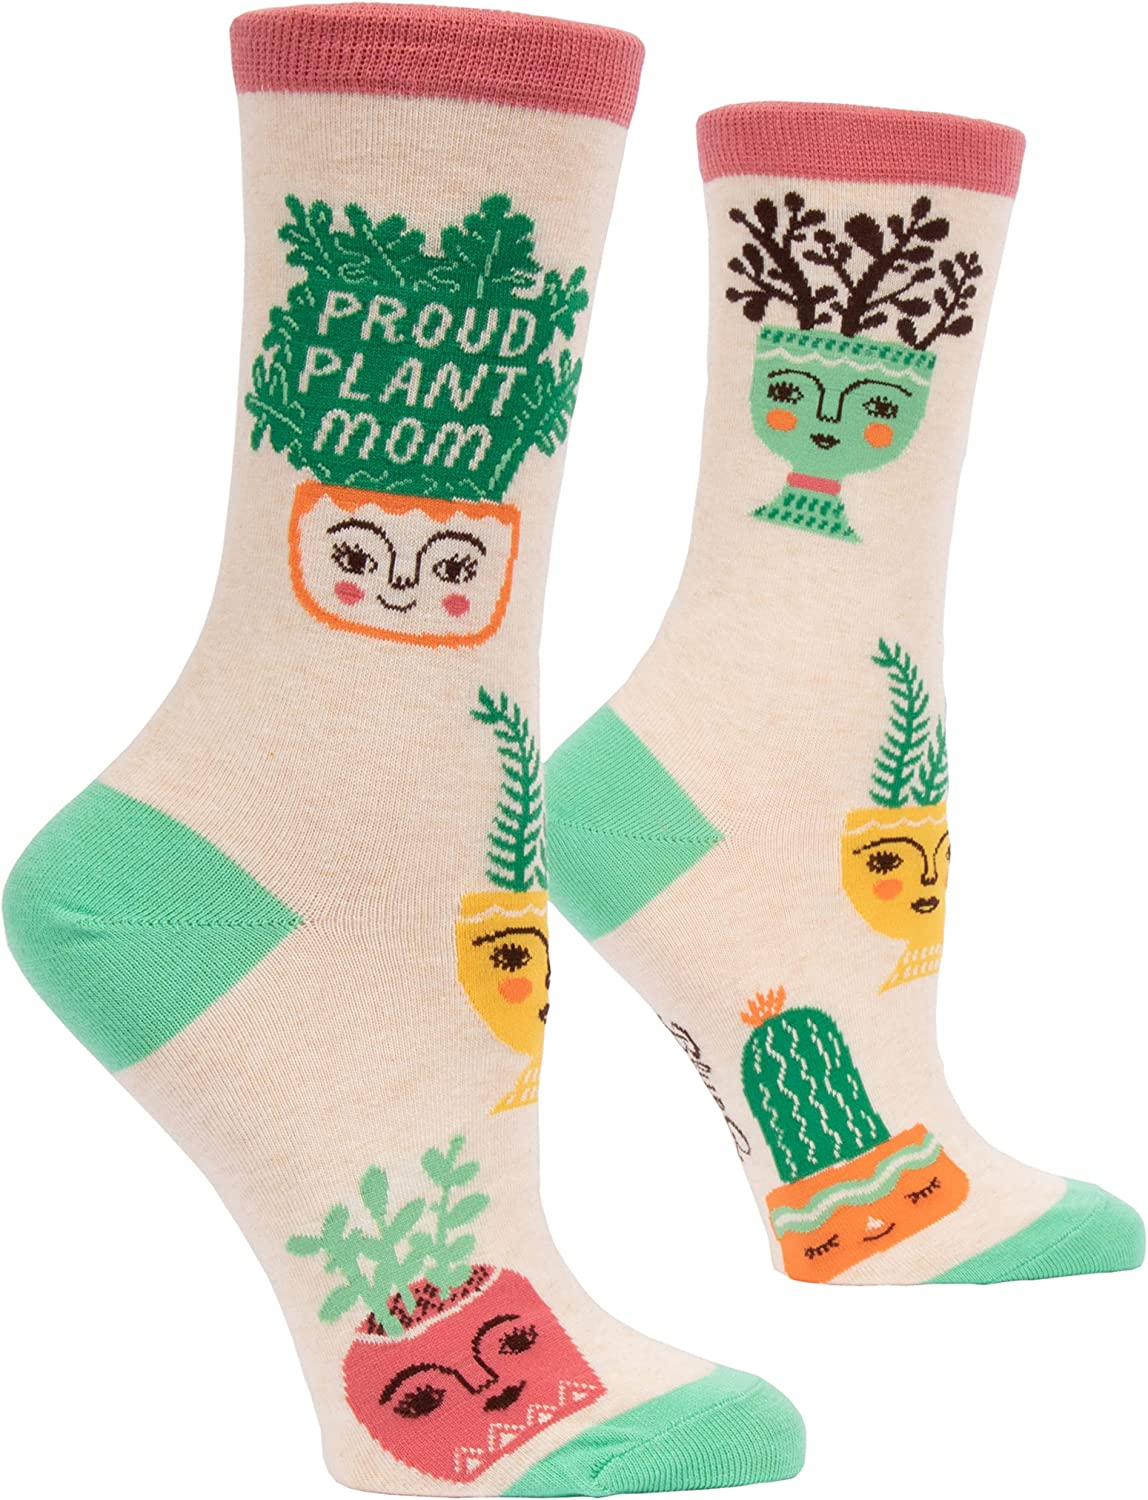 Top 8 Funny Garden Socks For Women